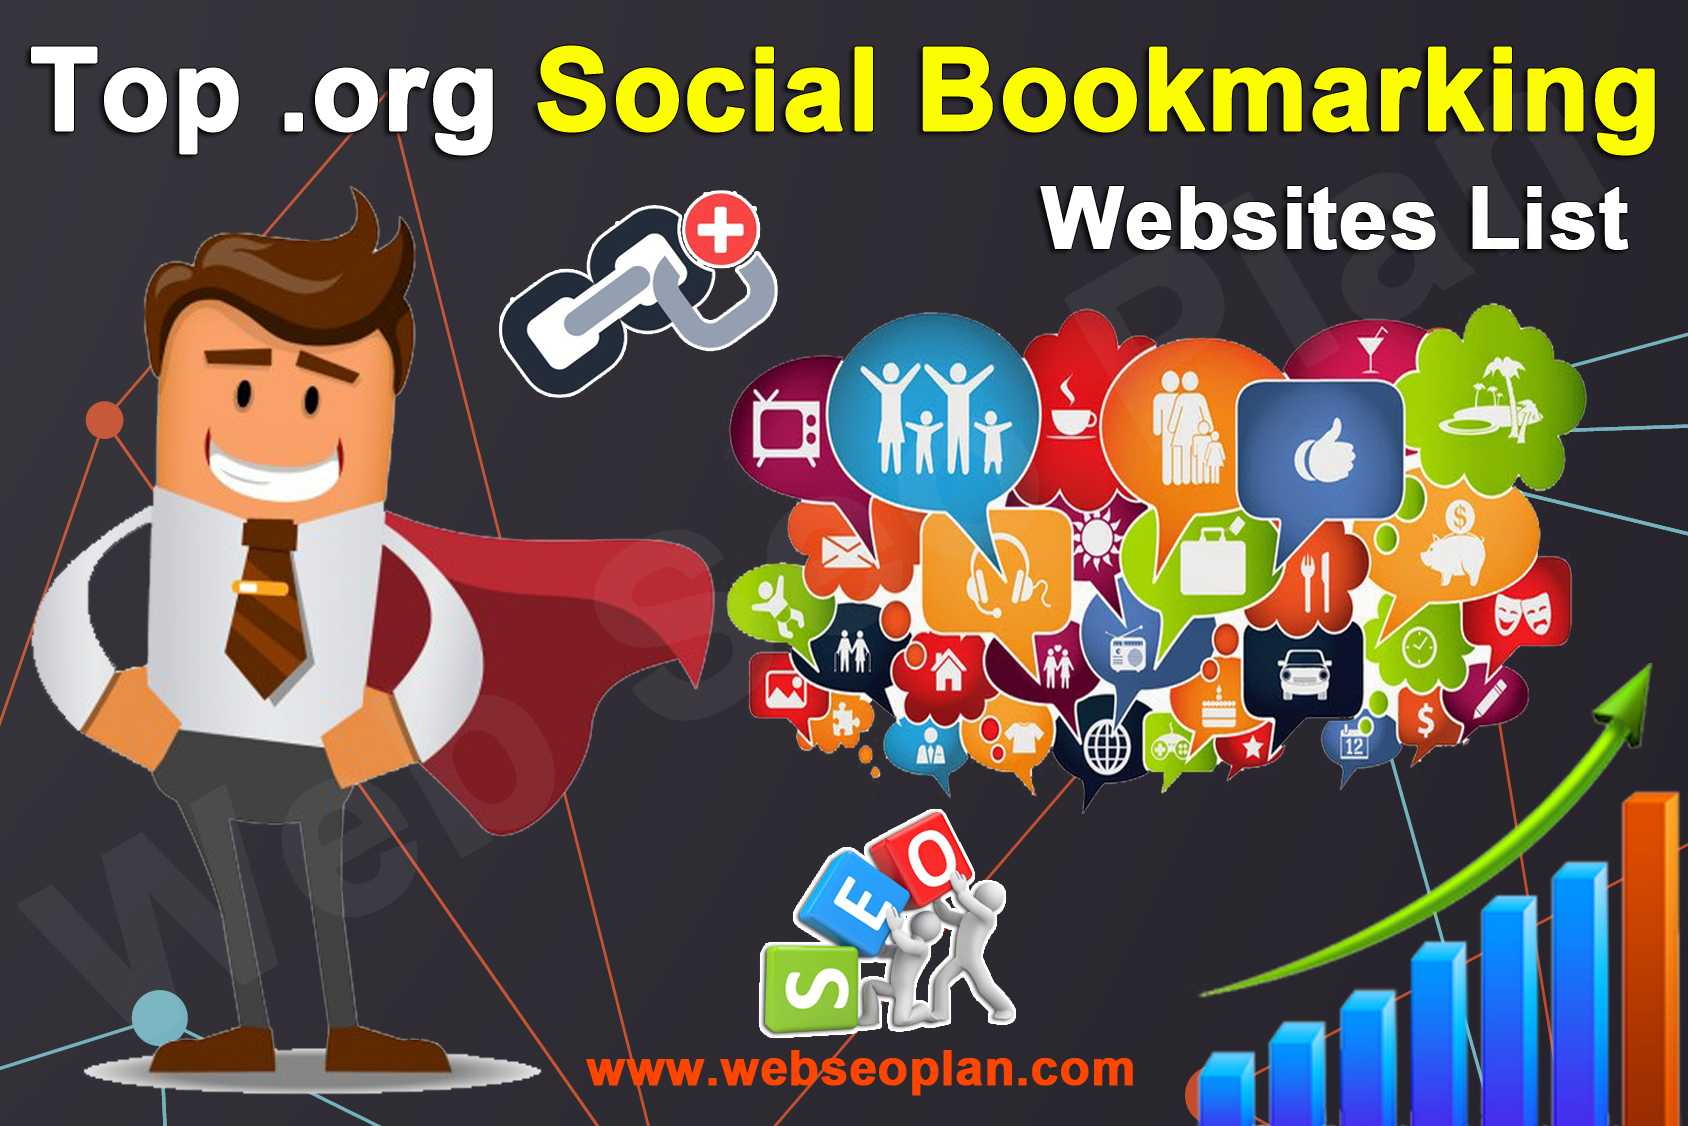 Top Org Social Bookmarking Websites List - Web Seo Plan